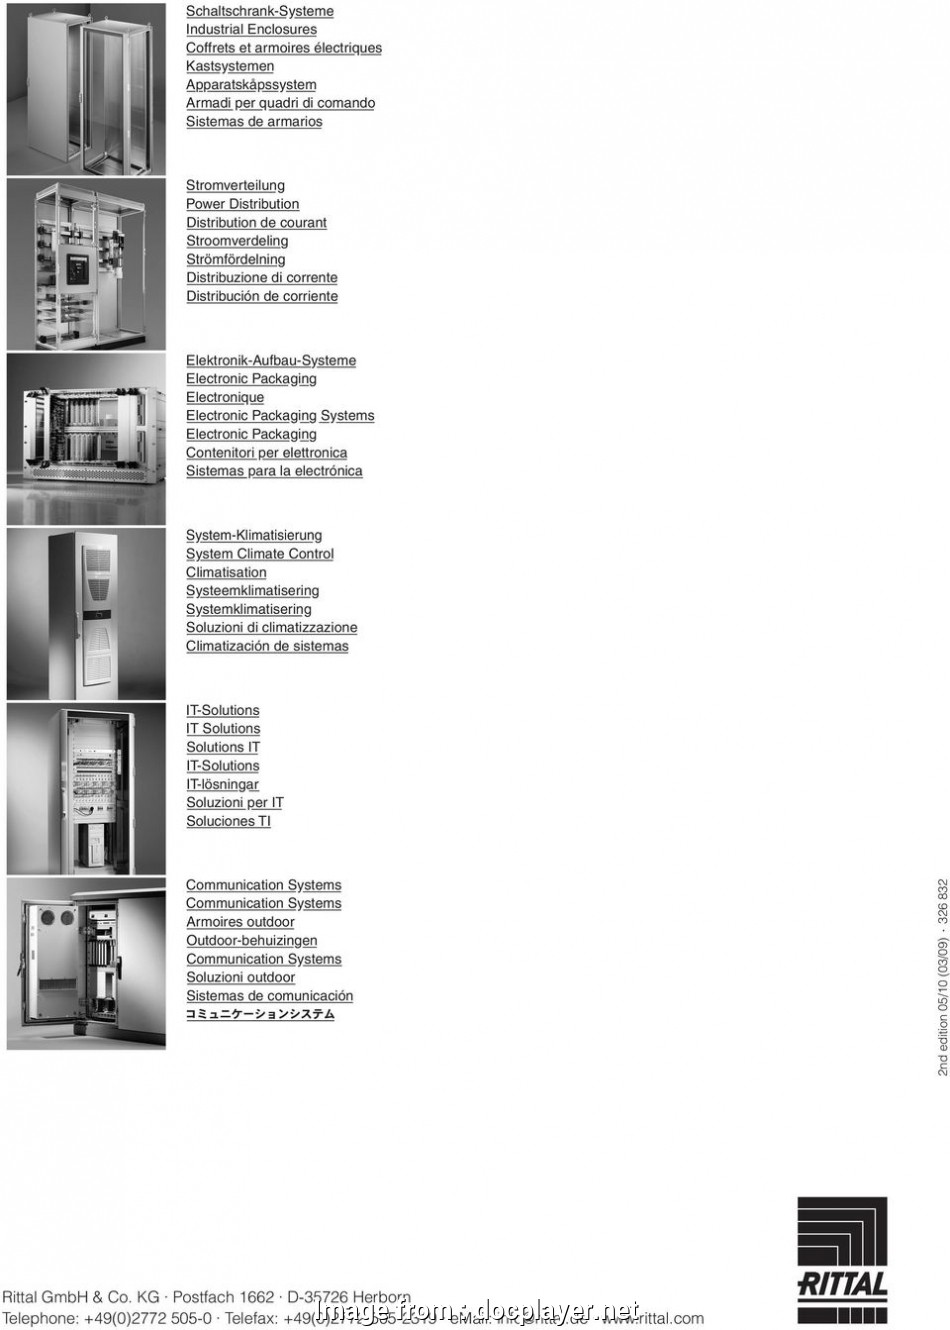 Rittal Thermostat Wiring Diagram Fantastic Electronic